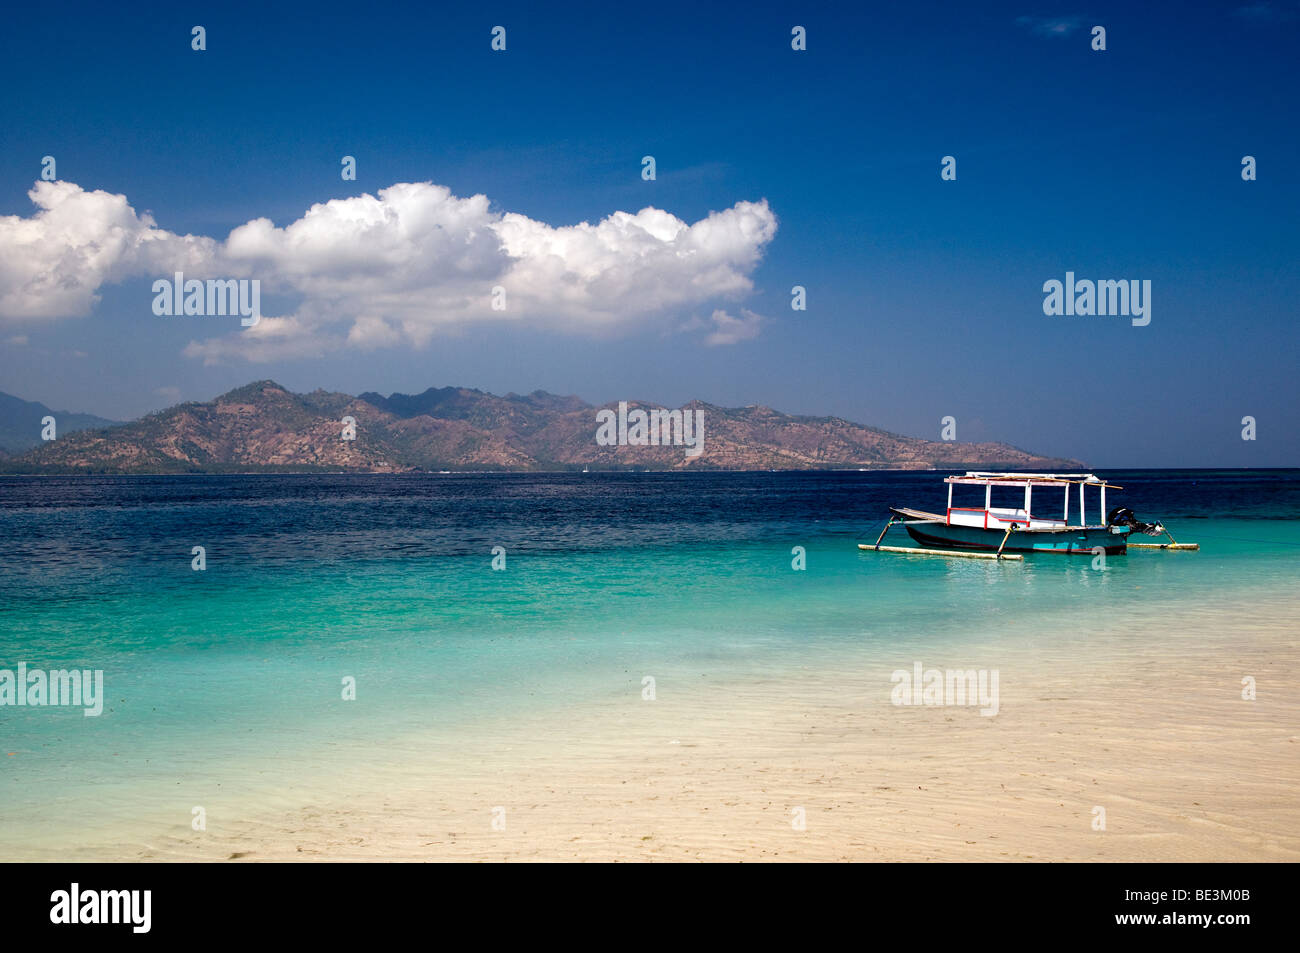 Lonely boat and pristine tropical waters at Gili Air island, Lombok, Indonesia - Stock Image